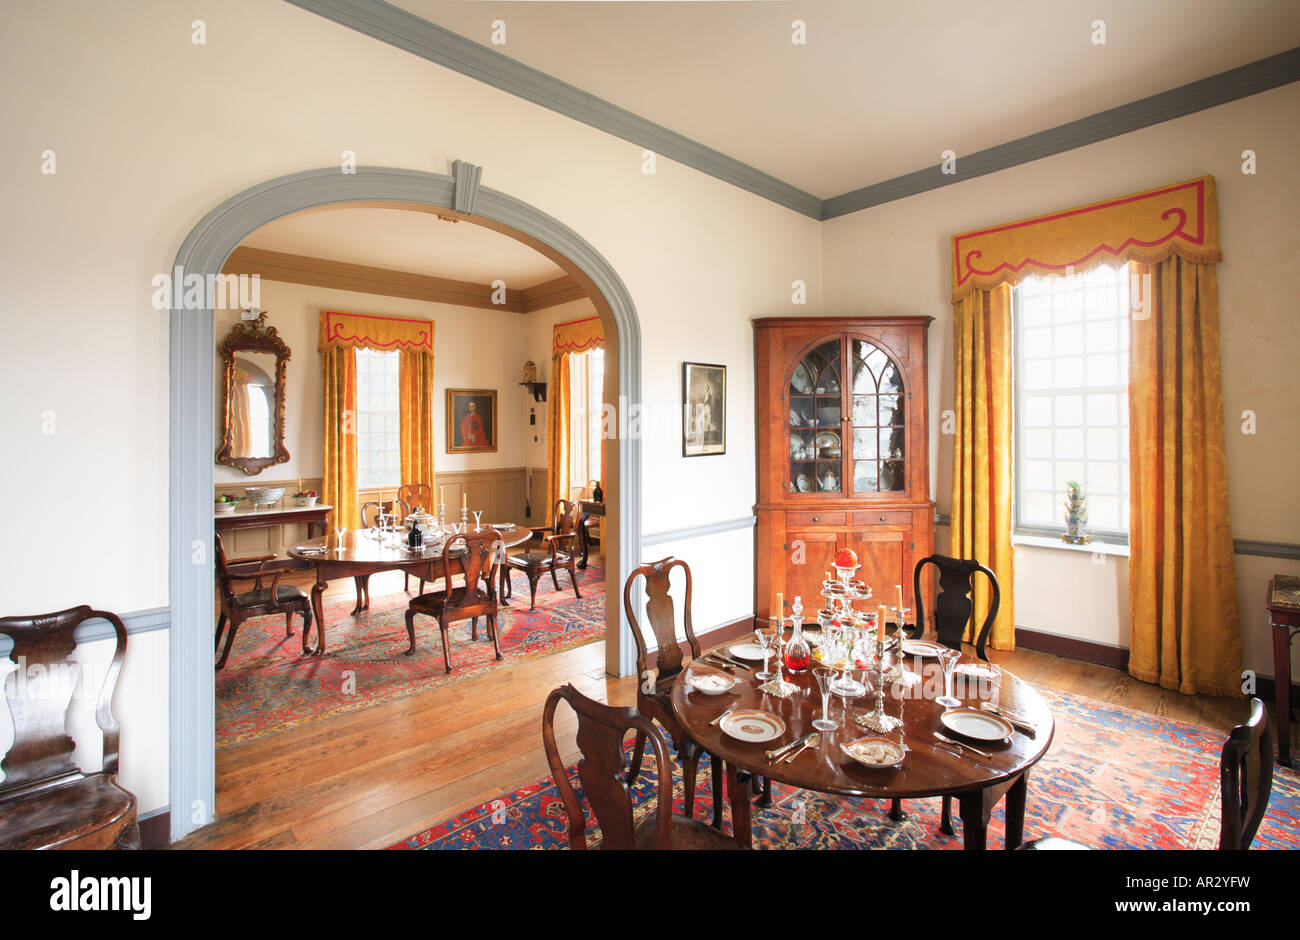 Cherry Tree Room At Birthplace Of Robert E. Lee   Stratford Hall,  Westmoreland County, Virginia, USA